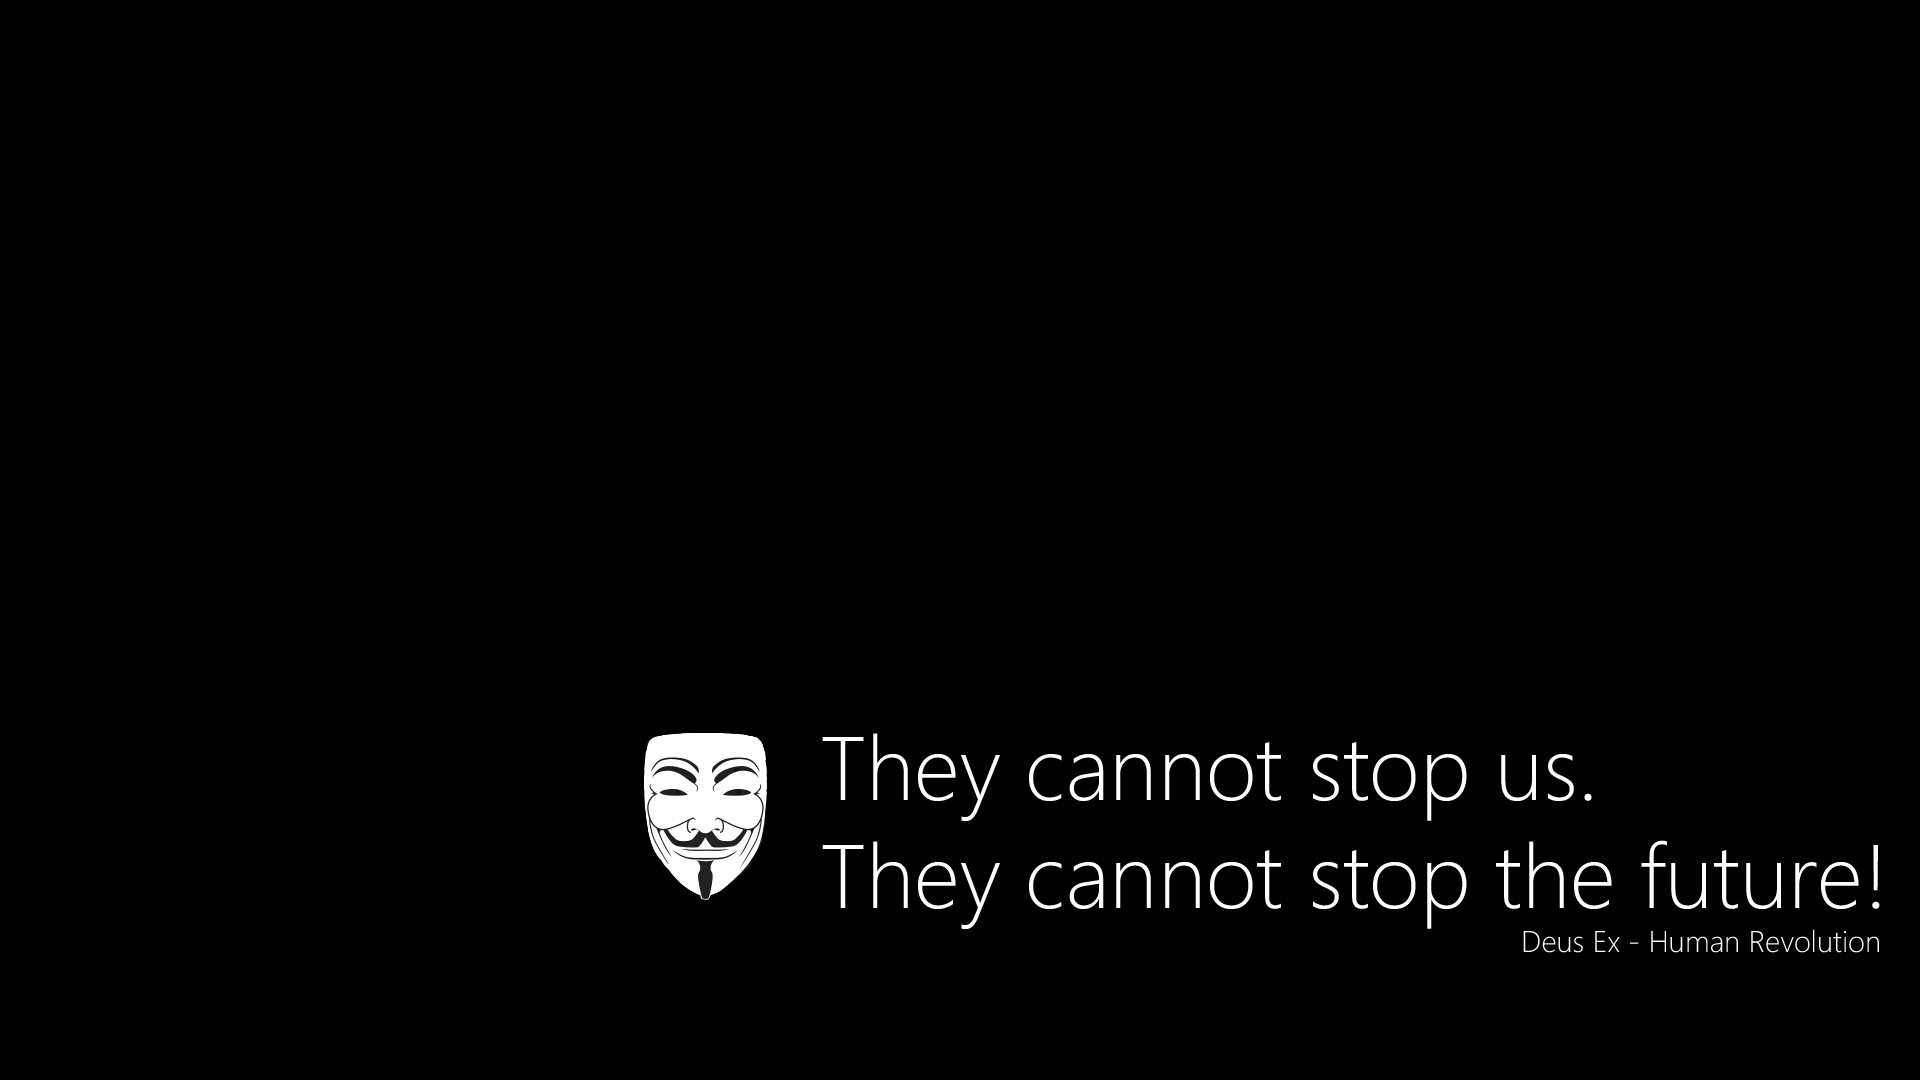 Deus Ex Human Revolution Quotes Wallpaper Anonymous They Cannot Stop Us Computer Wallpapers